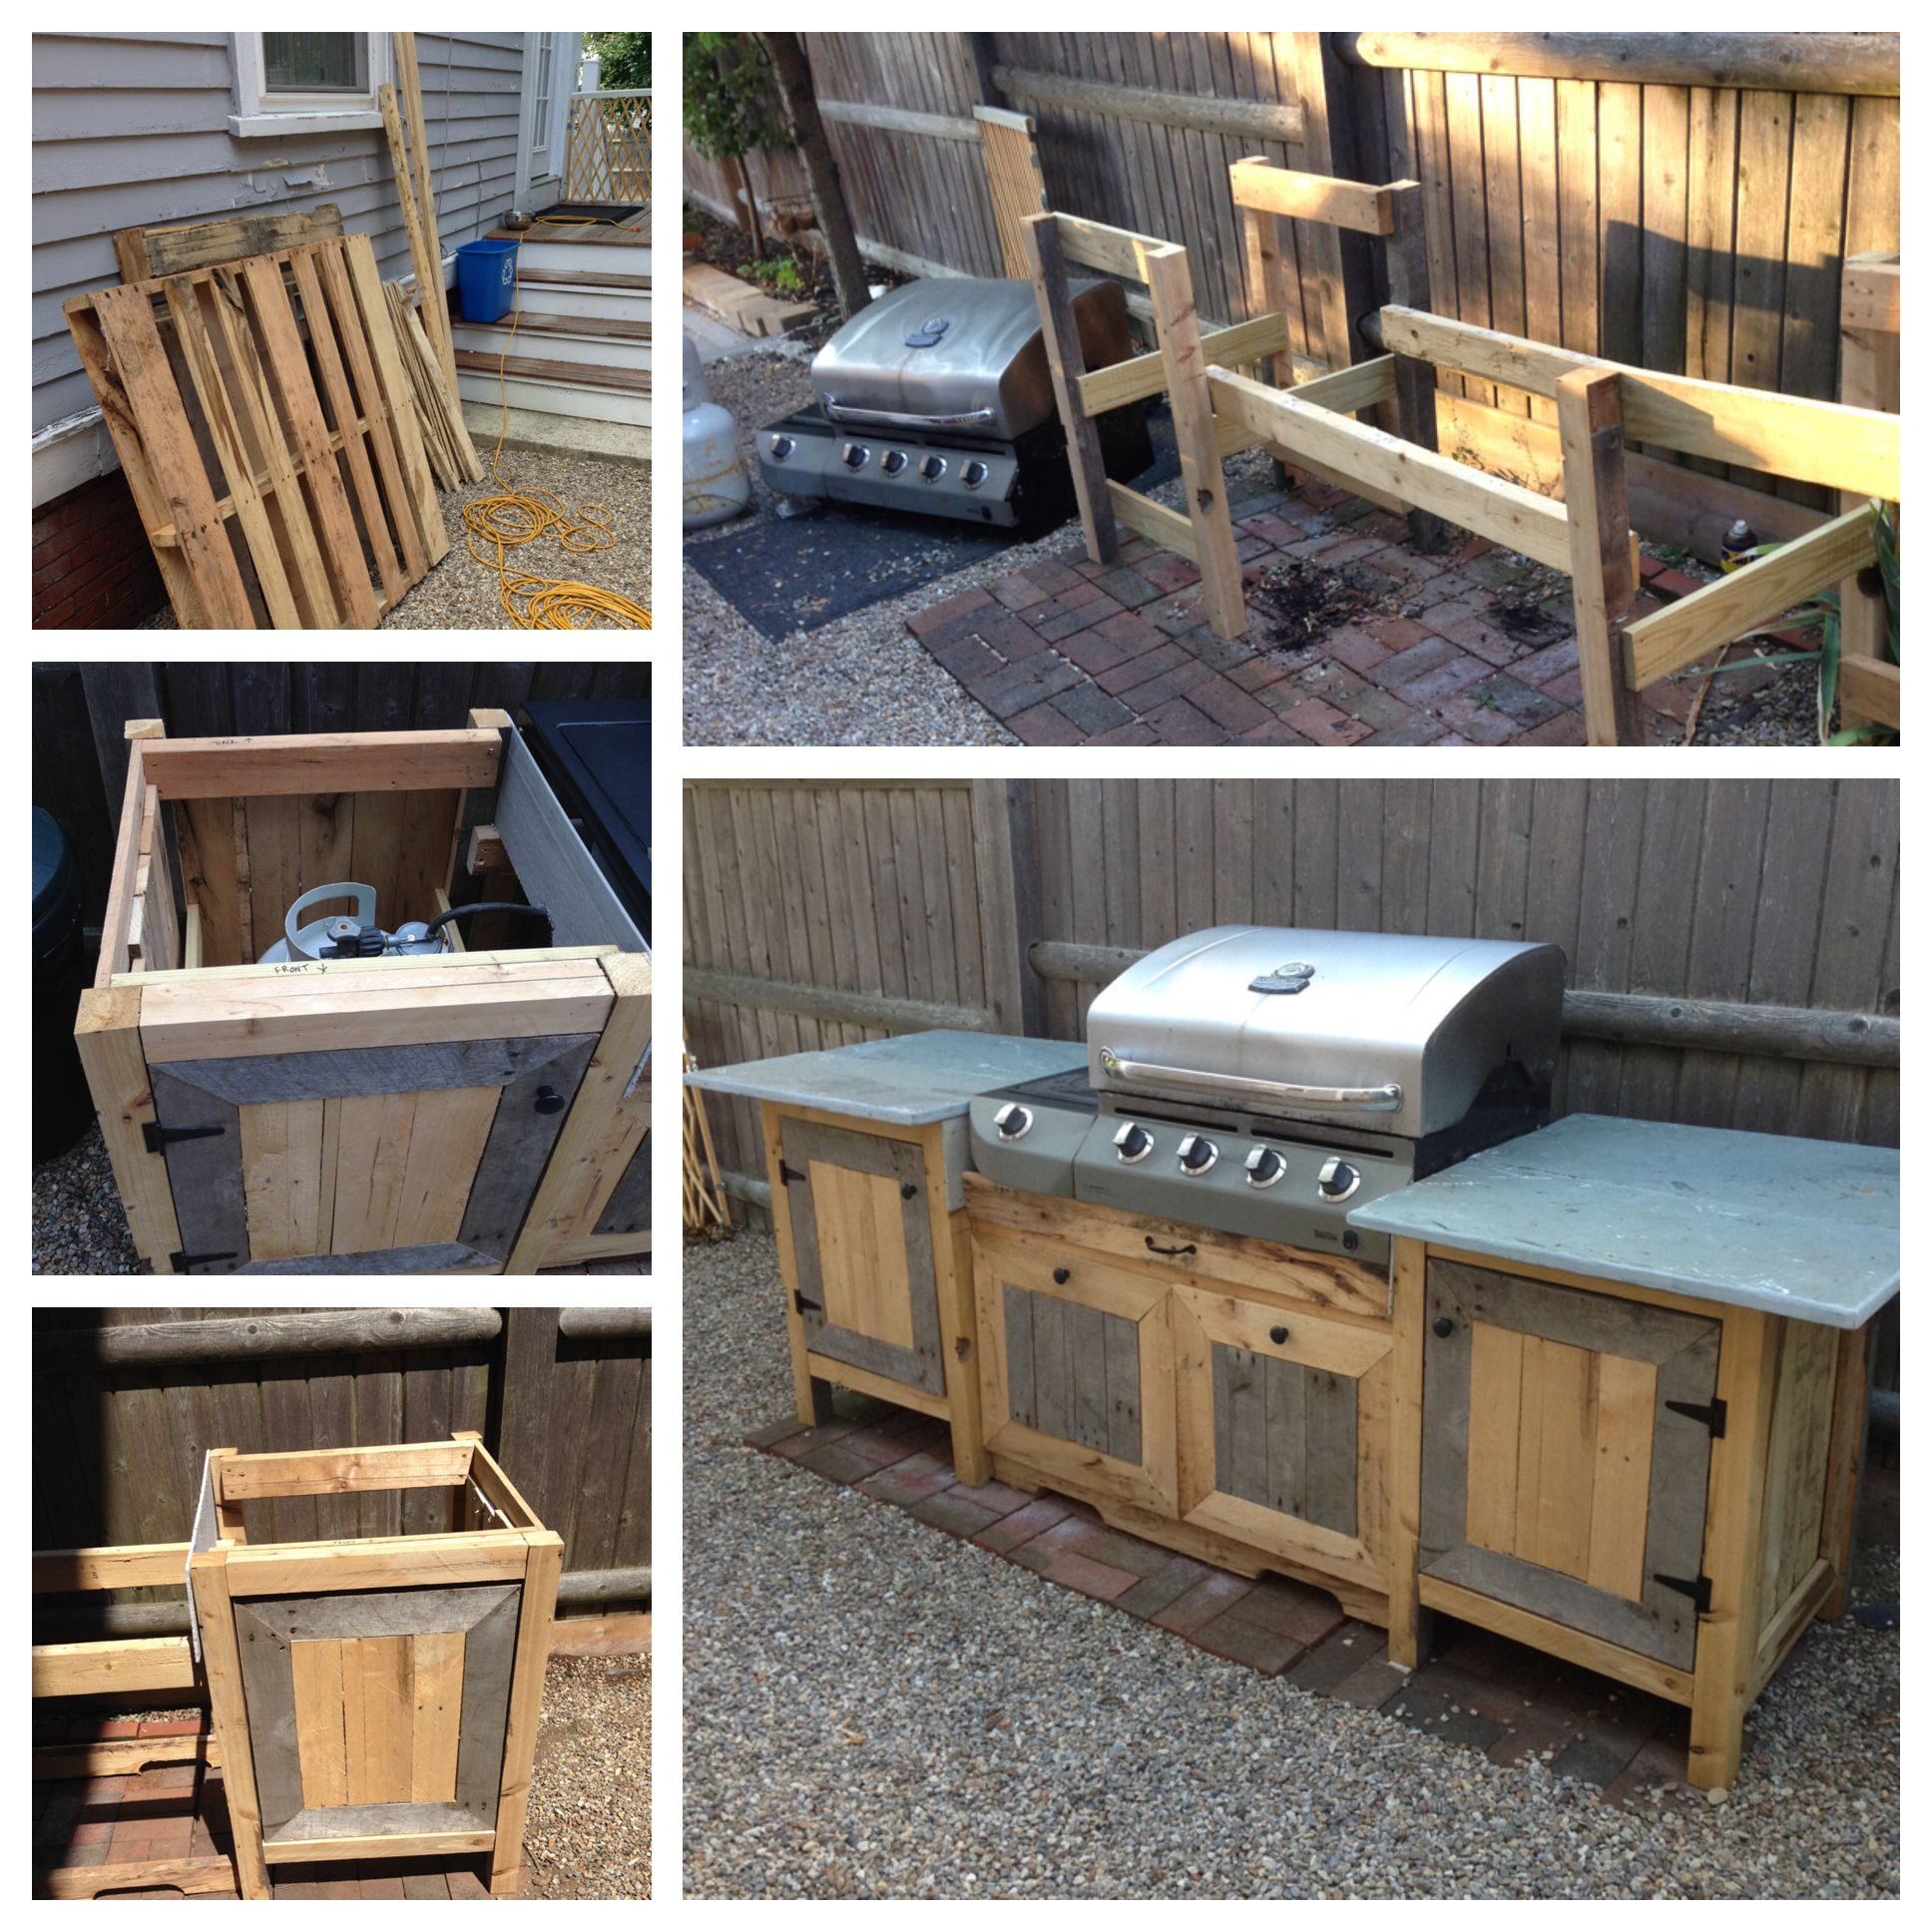 Outdoor Kitchens Jacksonville: Outdoor Kitchen Made From Pallets And Upcycled Bluestone